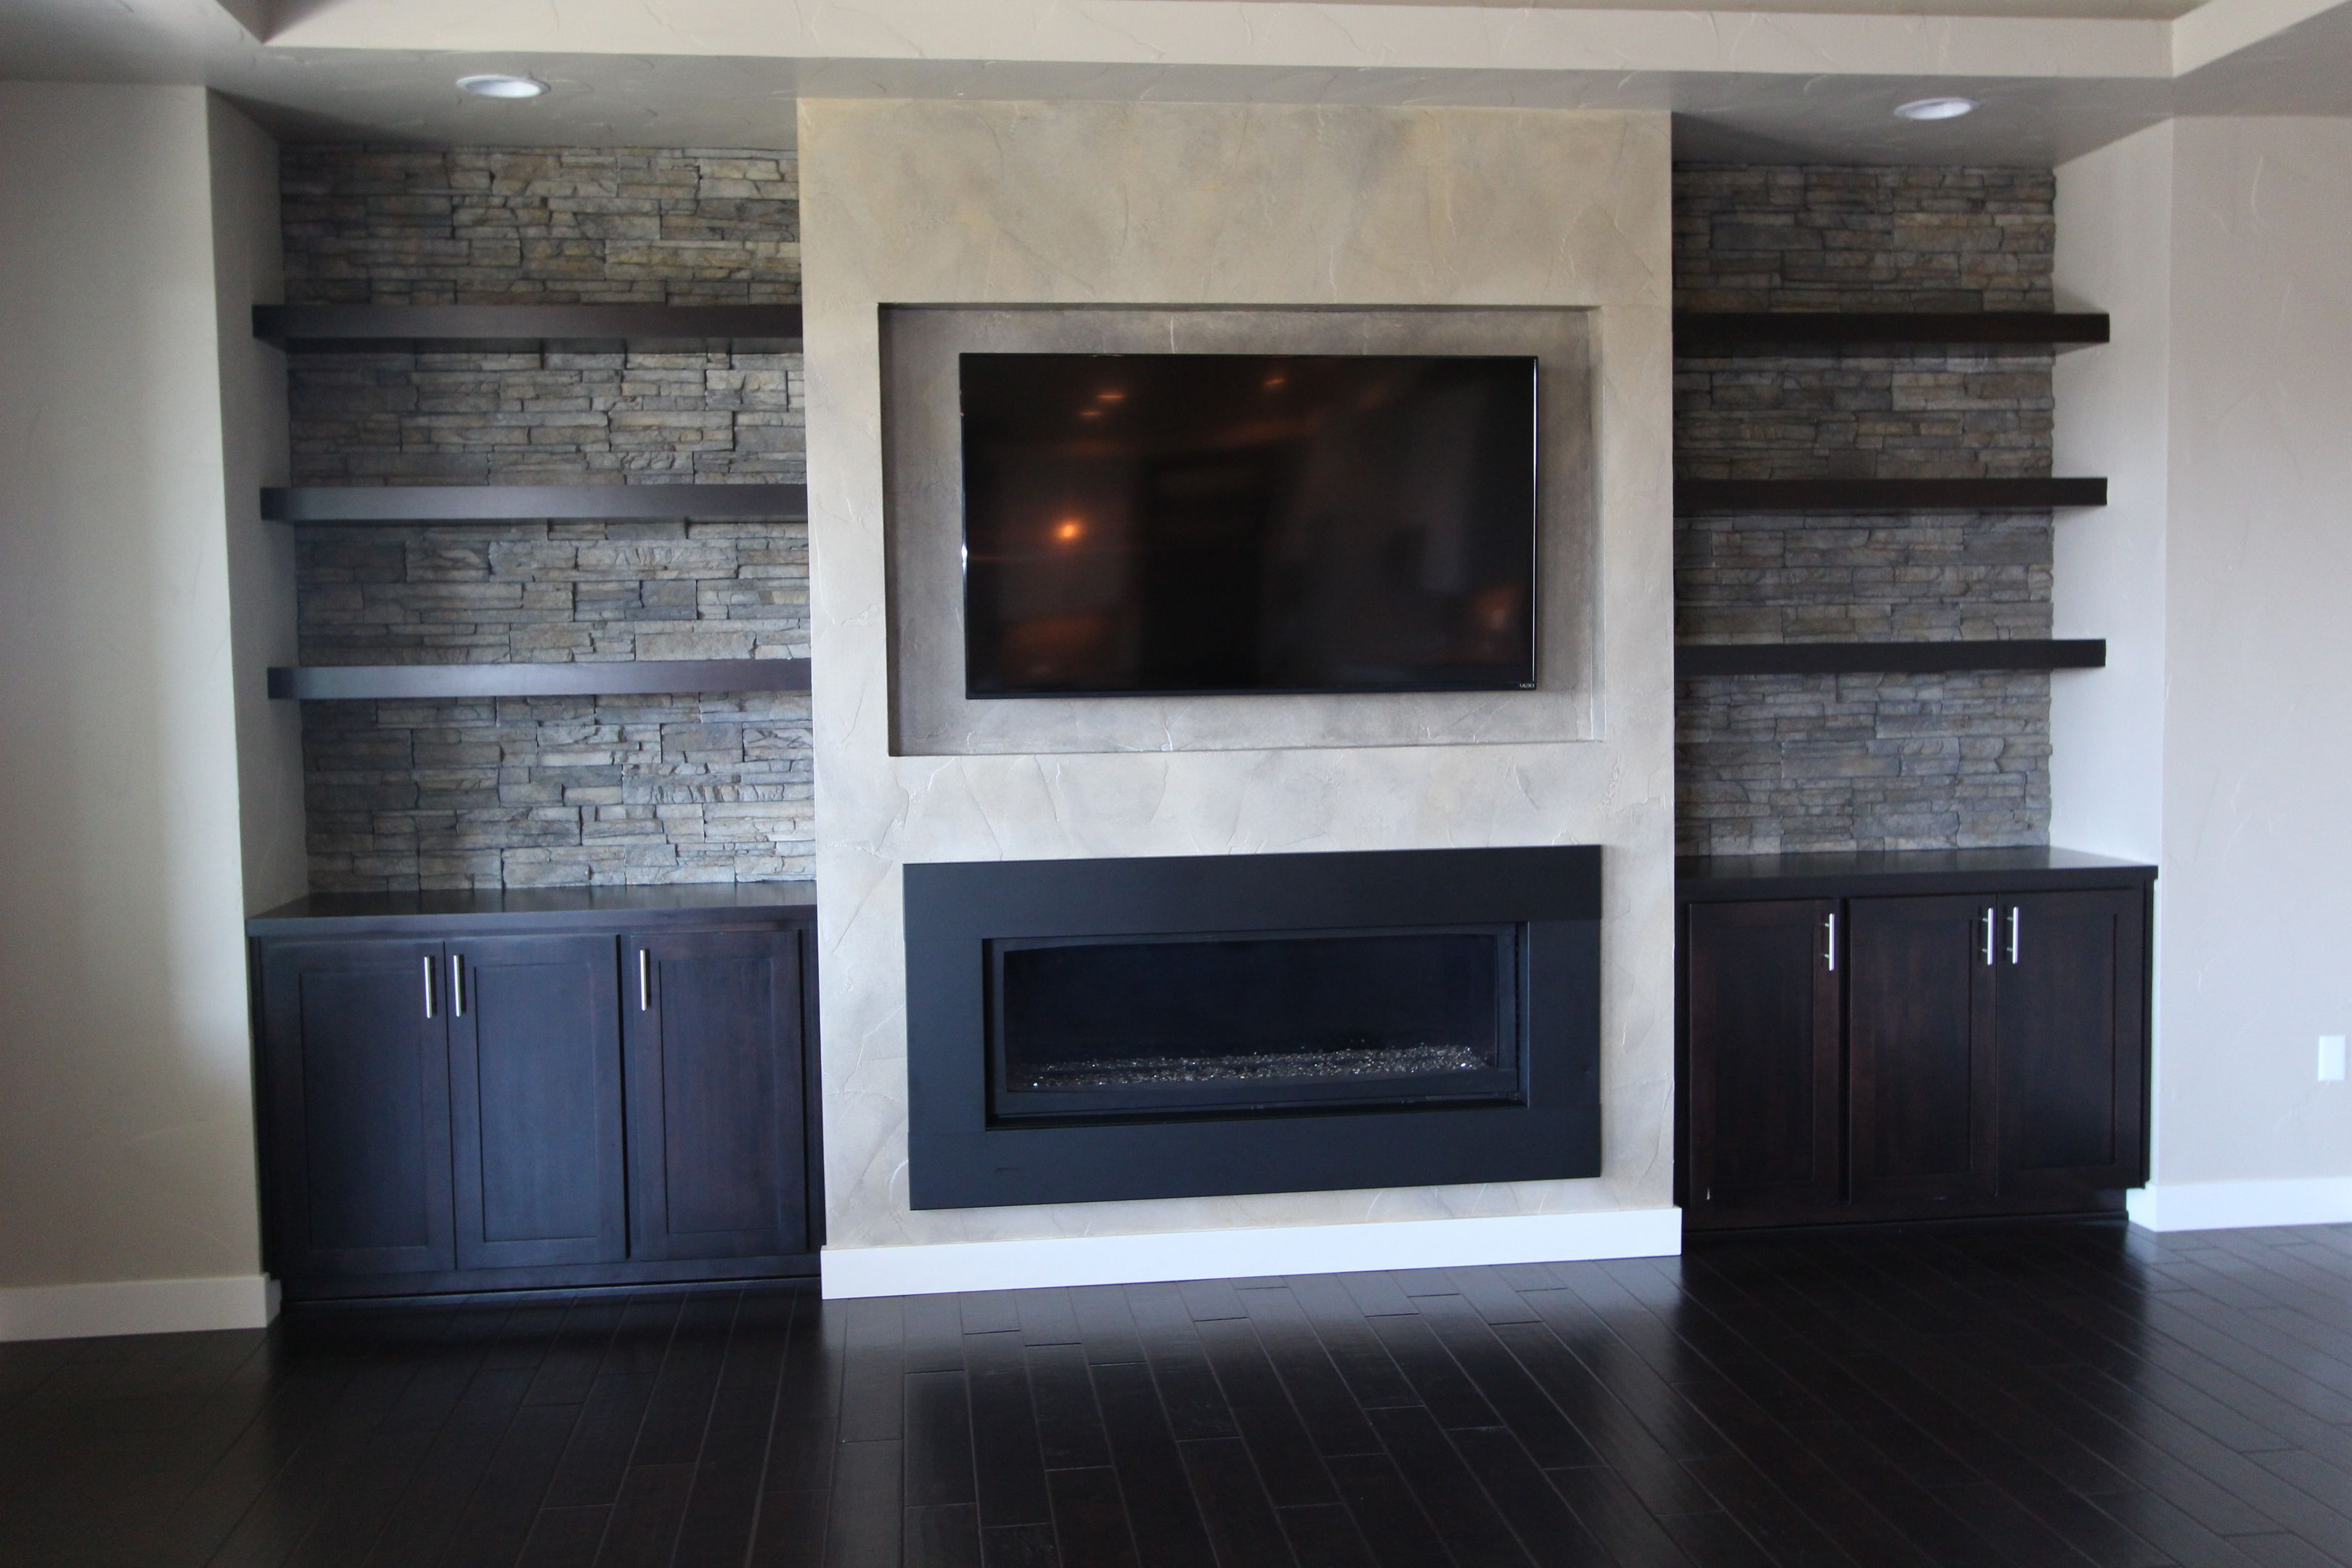 Modern wood fireplace and tv shelves tv above the fireplace style western maple recessed panel dark black color entertainment center floating shelves tv above the fireplace wood tops built ins standard overlay dailygadgetfo Images